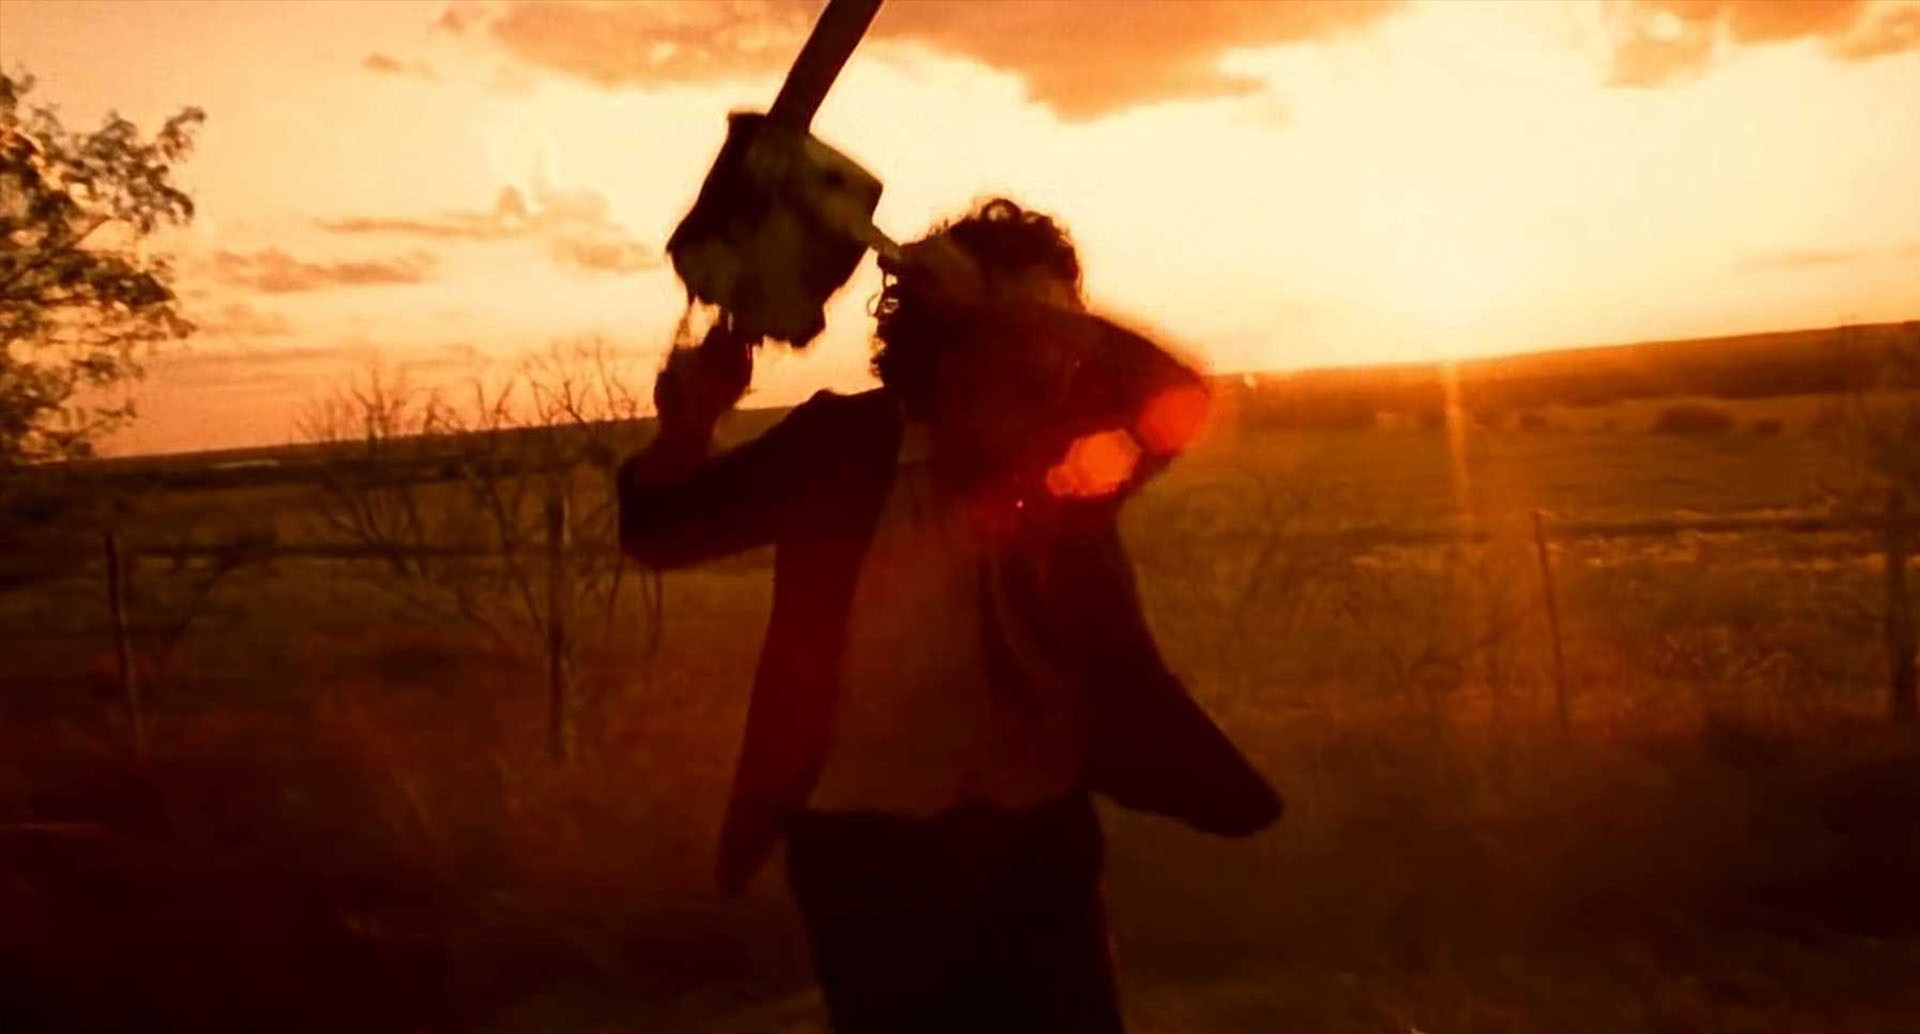 'The Dig' Directors for Legendary 'The Texas Chainsaw Massacre' Reboot